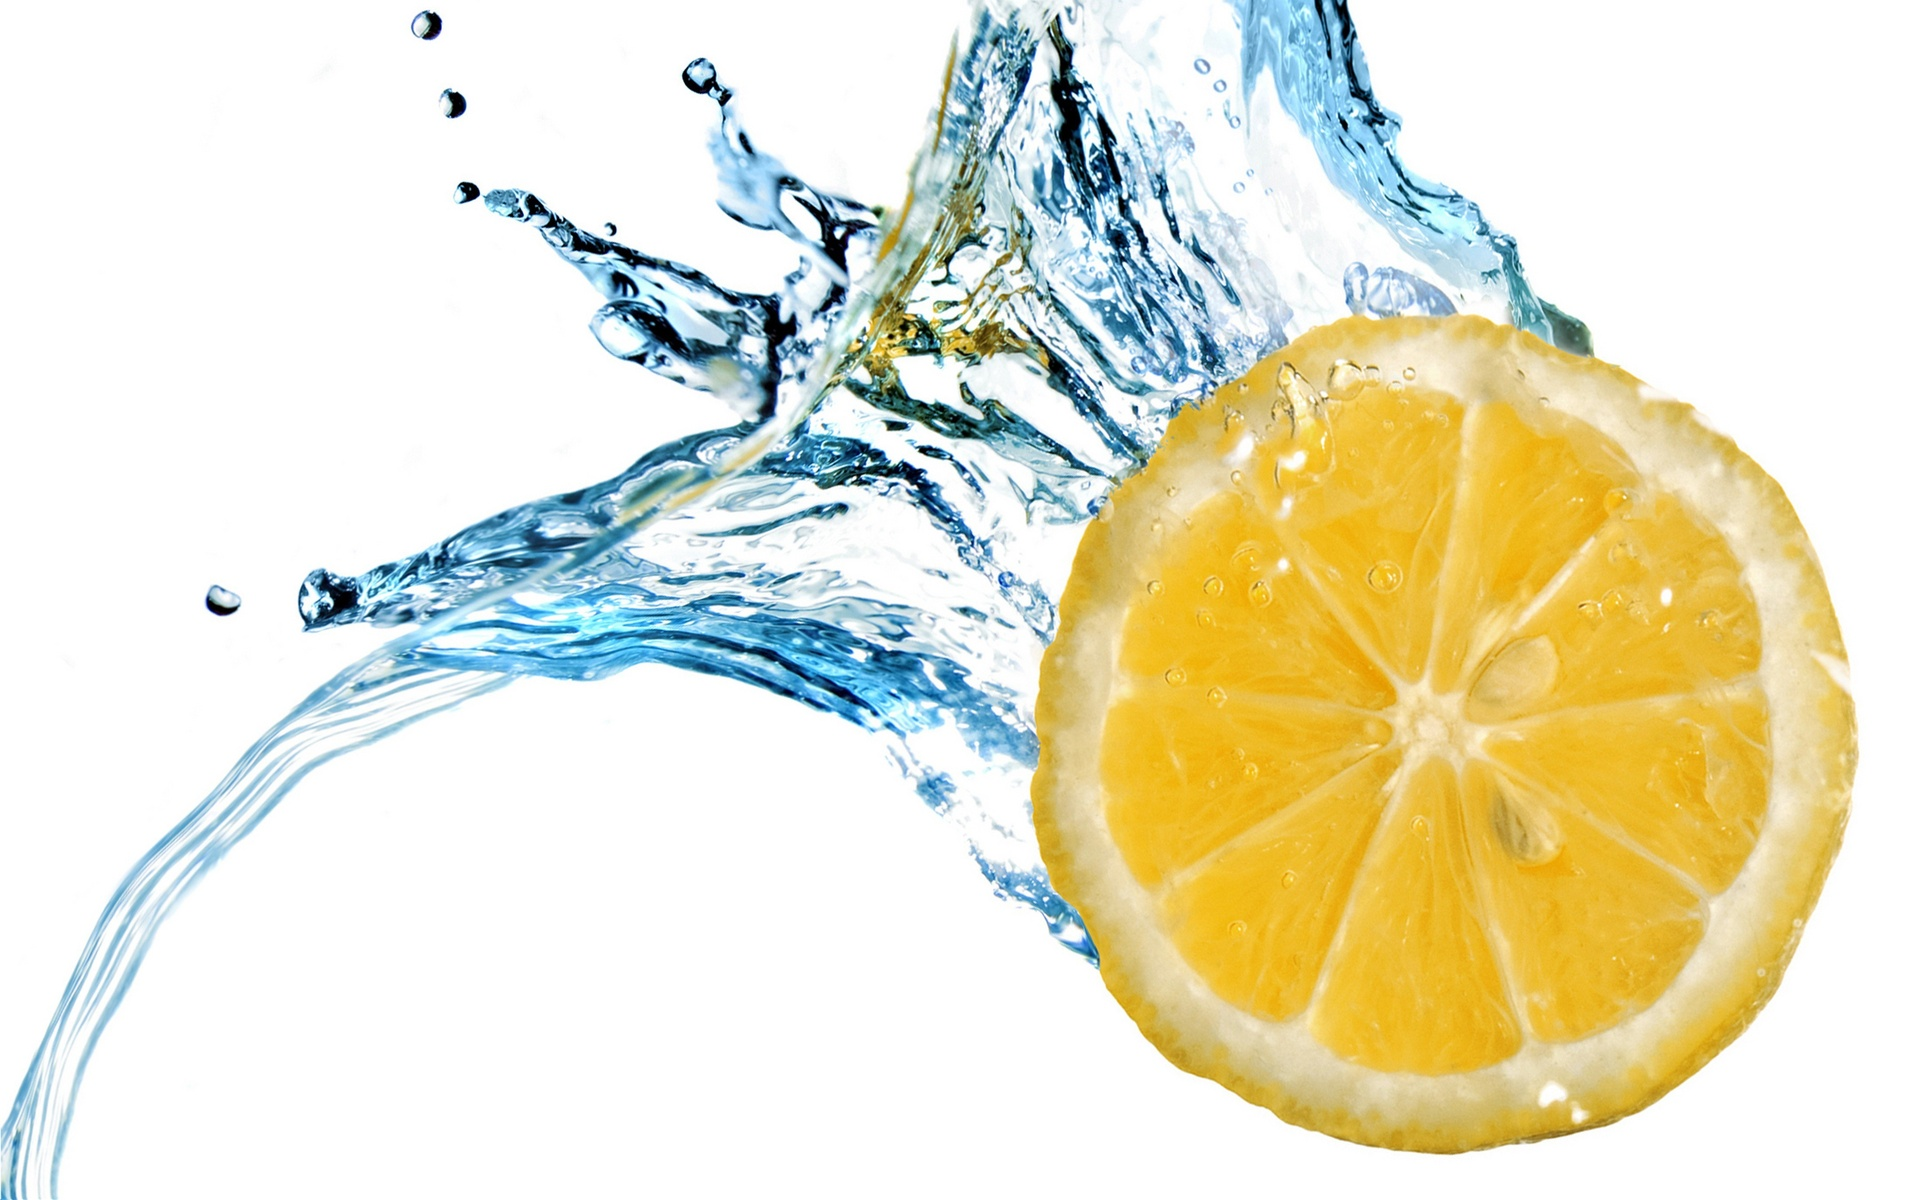 lemon-water-wallpaper-3